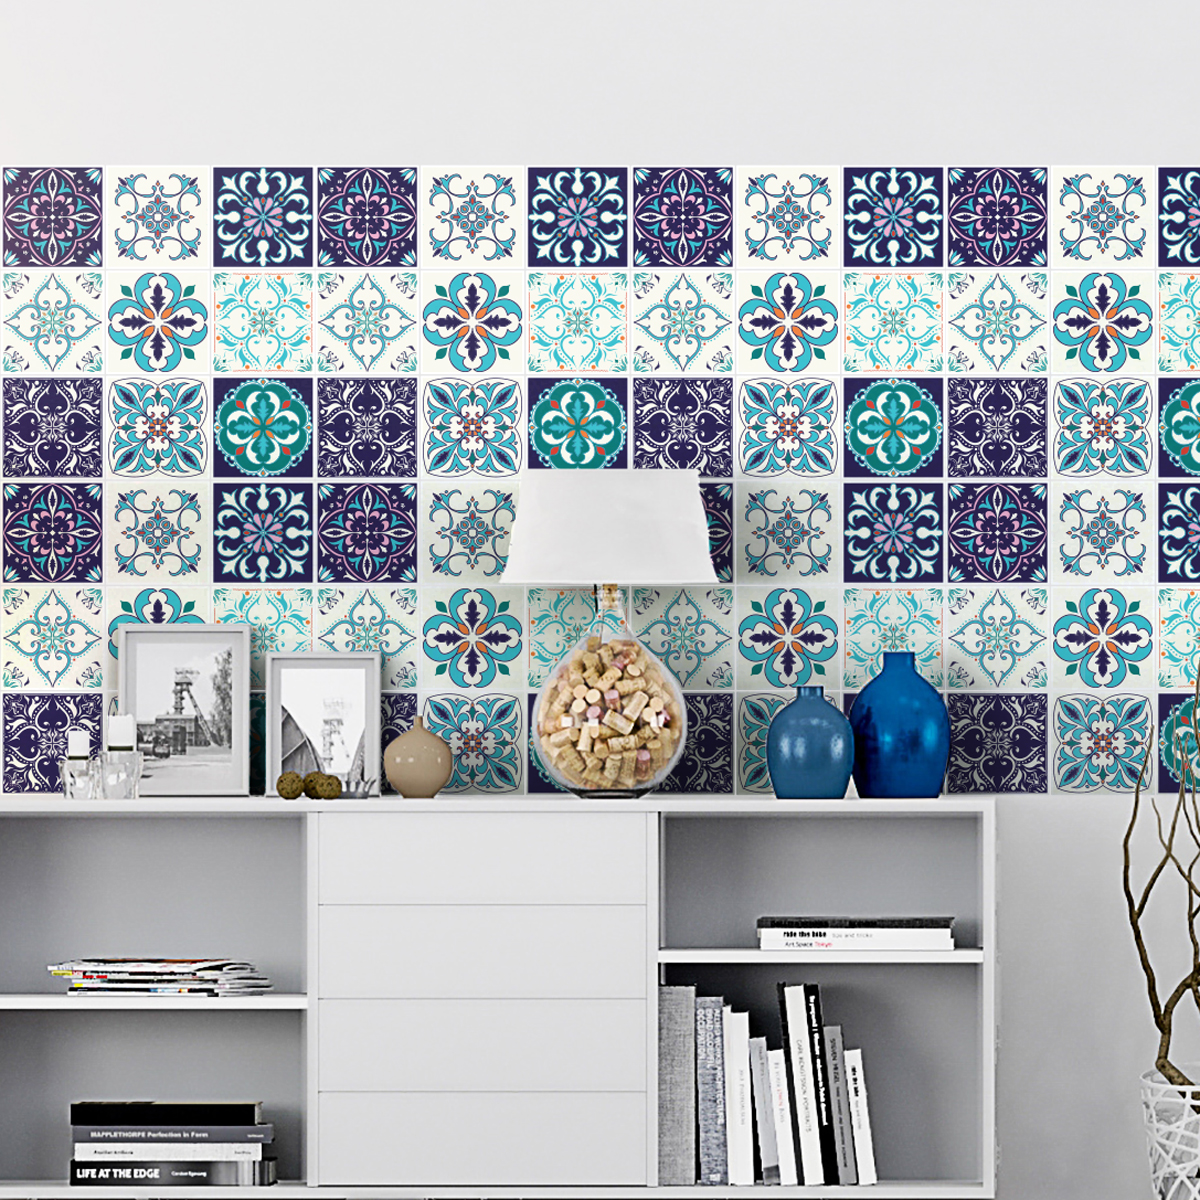 9 stickers carrelages azulejos izmir cuisine carrelages ambiance sticker. Black Bedroom Furniture Sets. Home Design Ideas